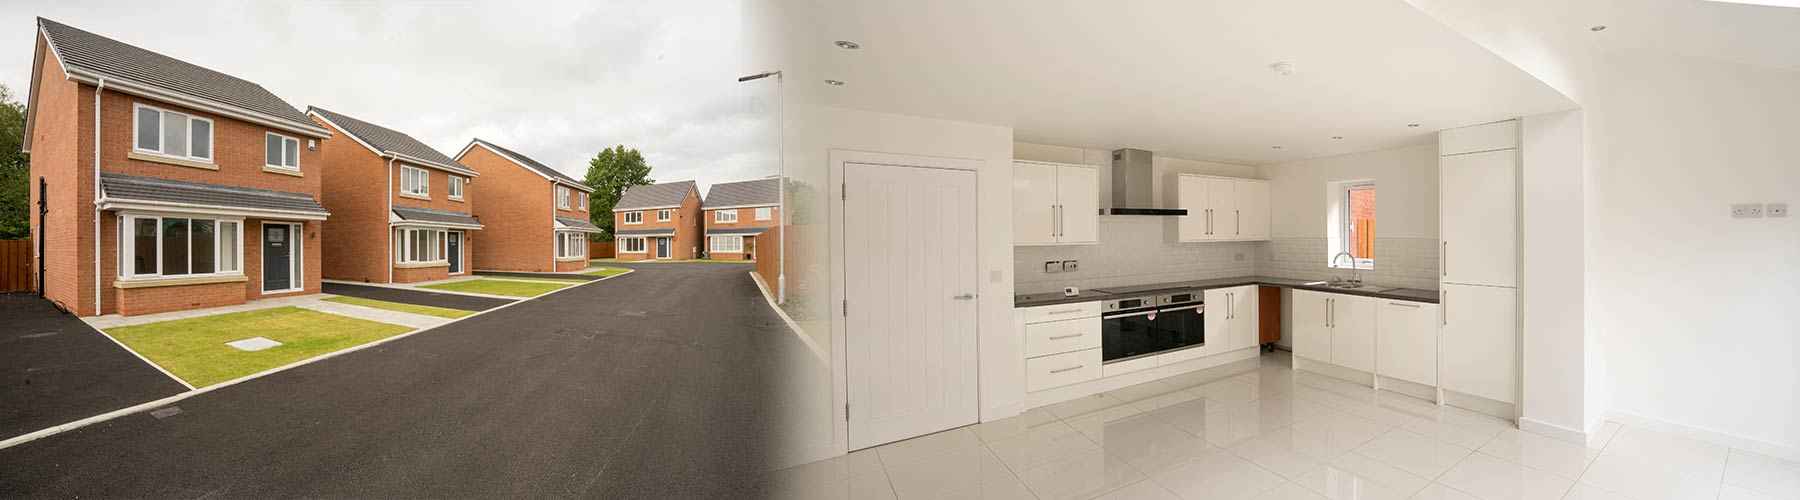 Our Kitchen Installers team, installed five brand new kitchens throughout this new build in Liverpool.